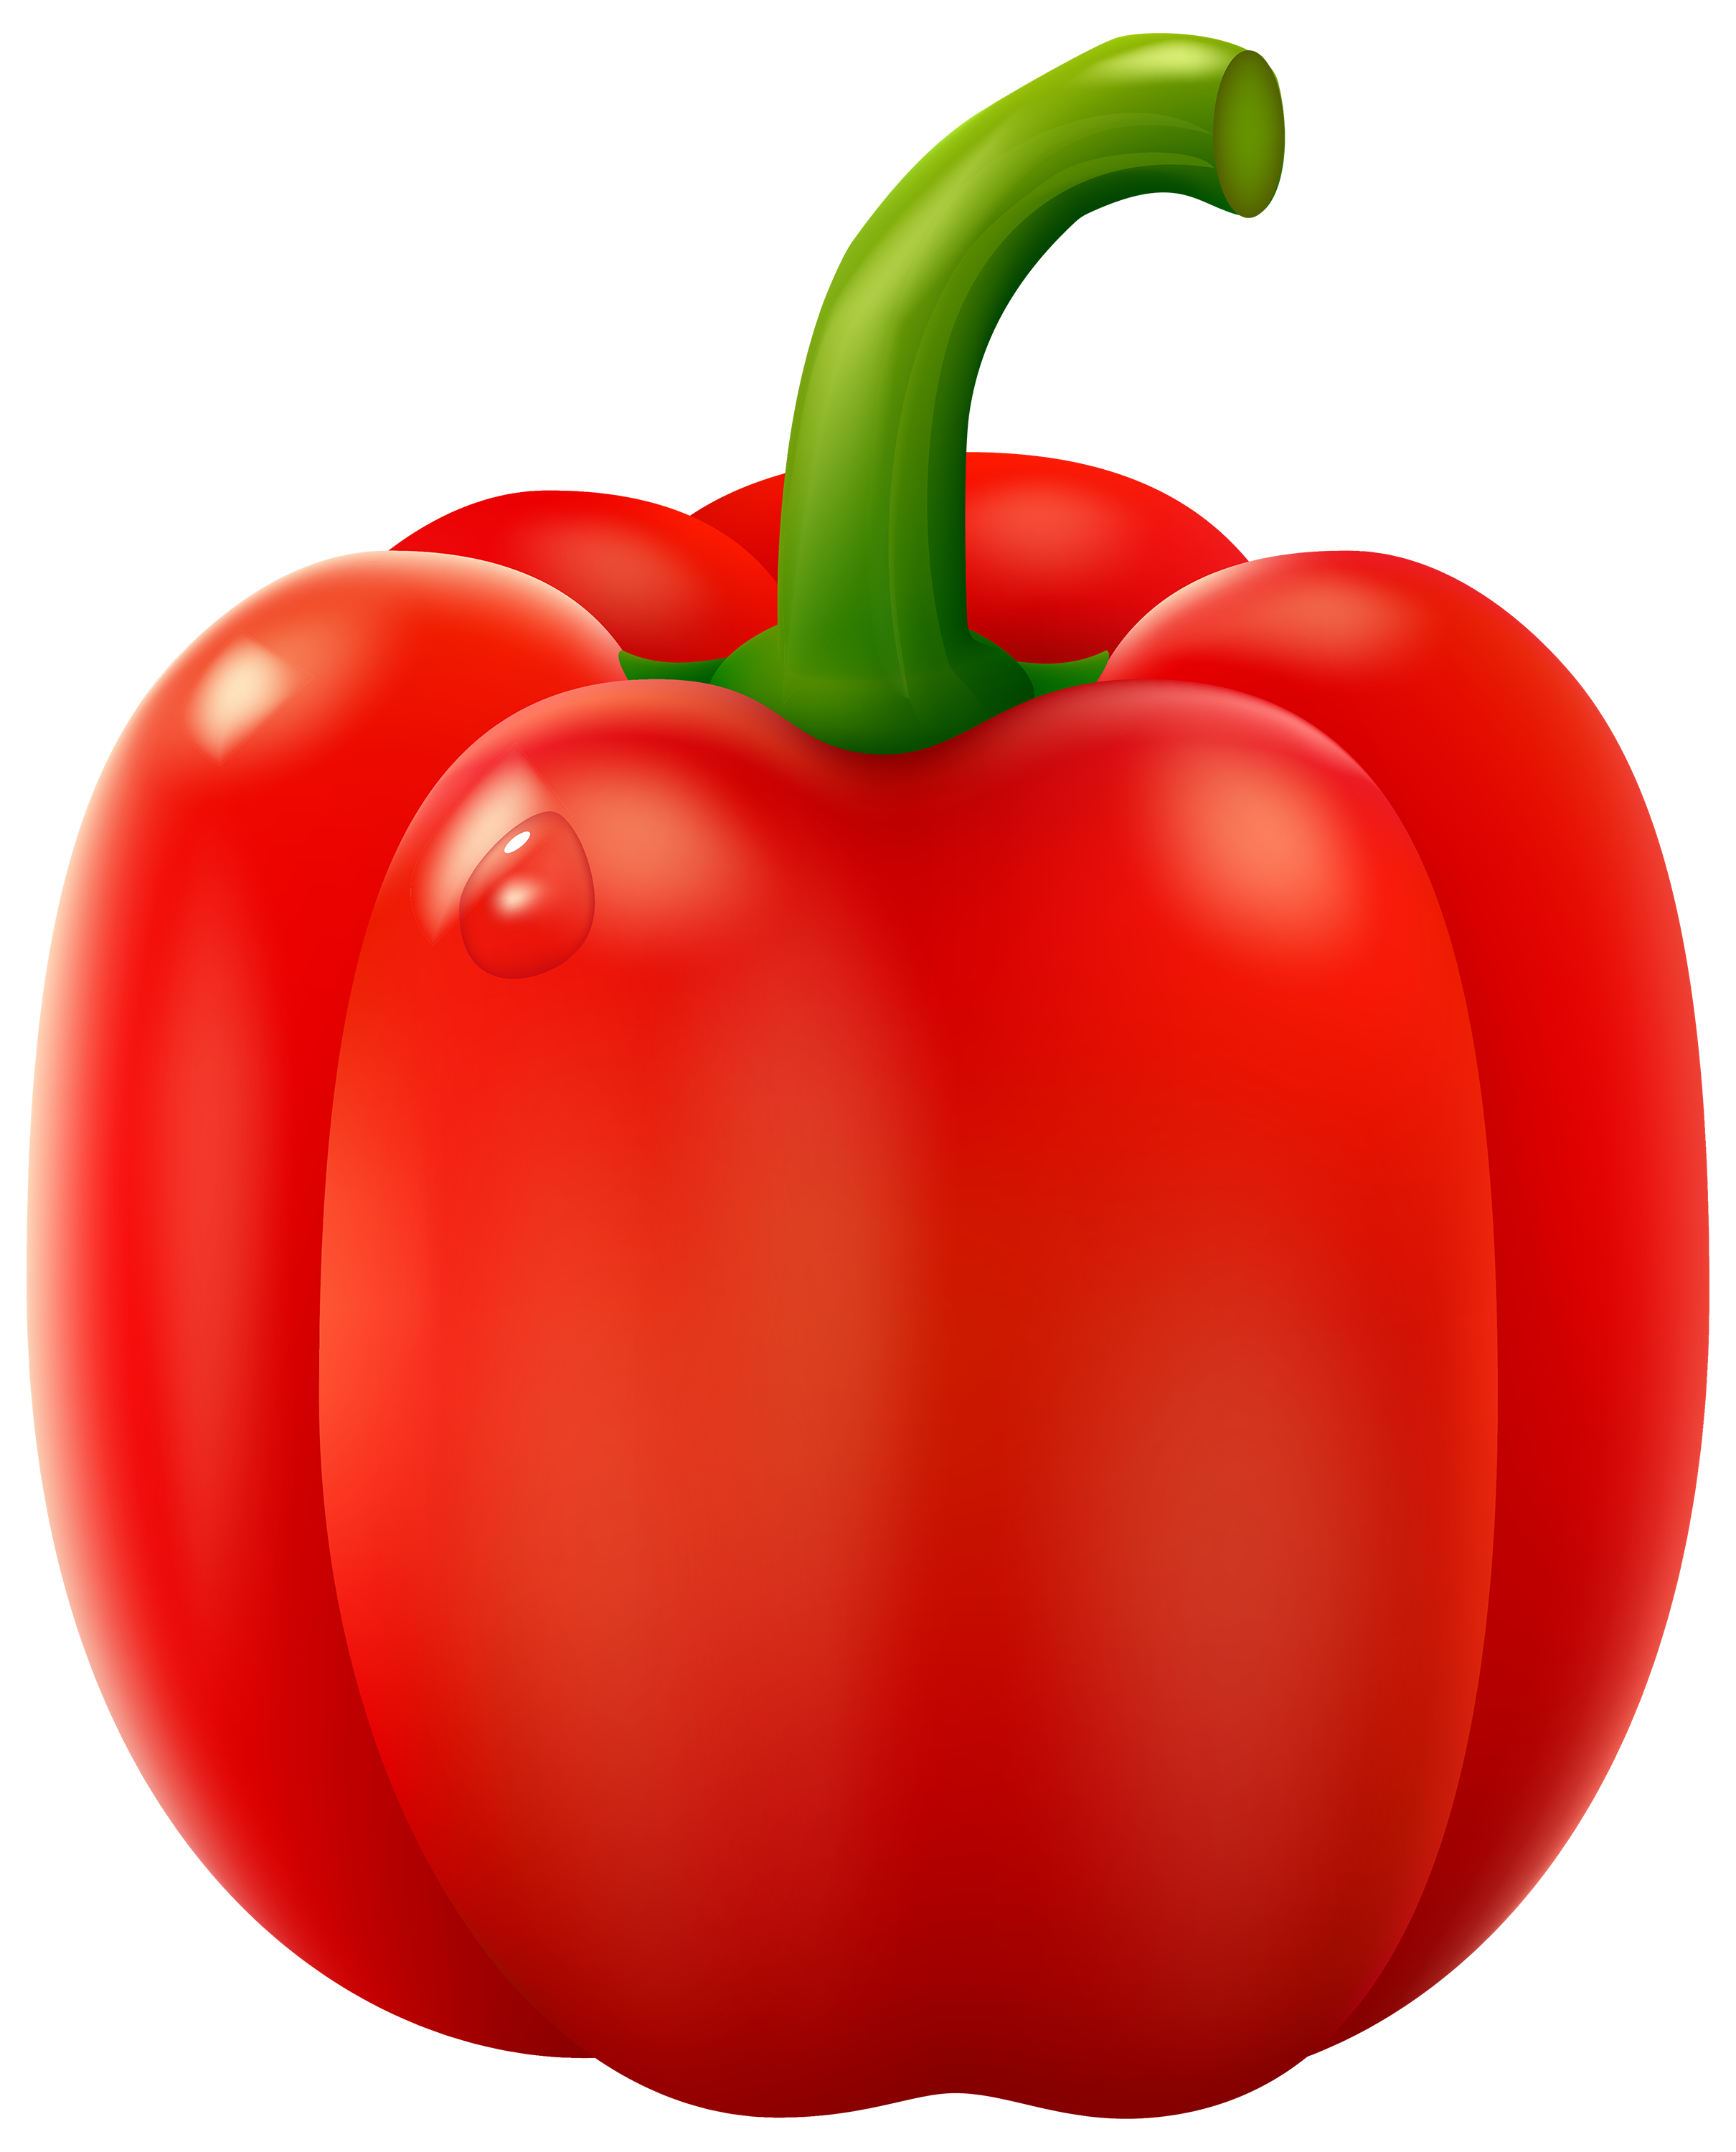 Pepper clipart. Red png best web